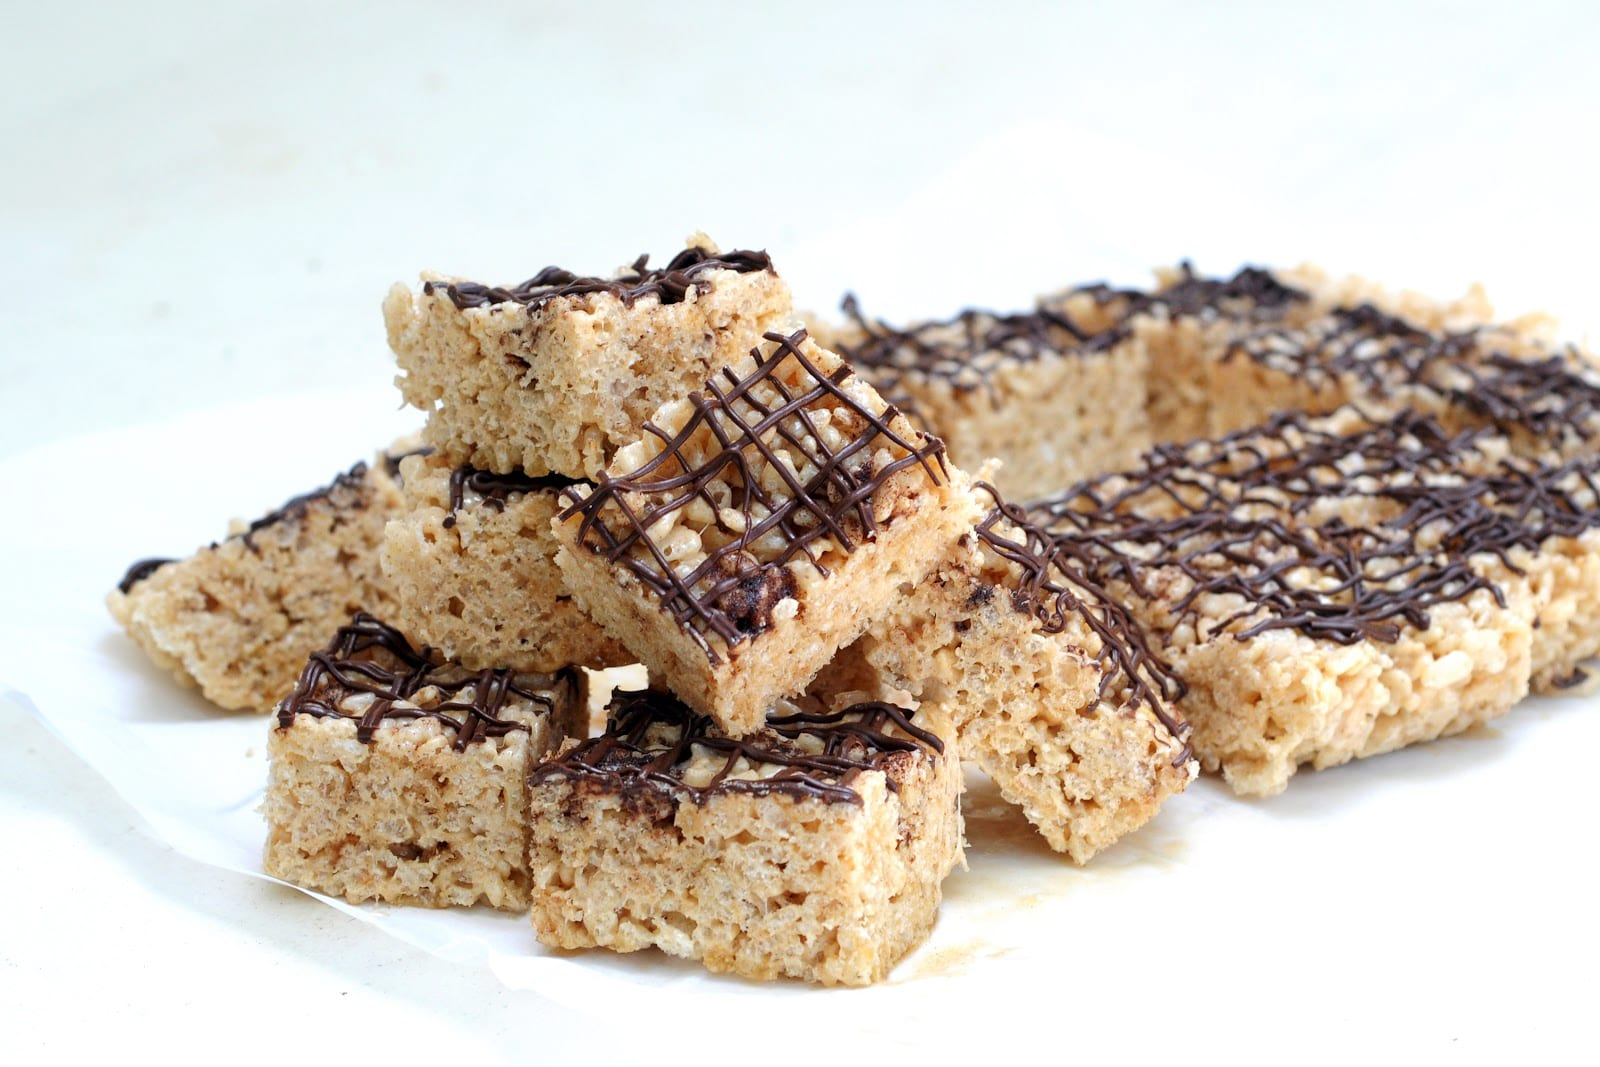 Brown Butter Rice Crispy Treats with Chocolate Drizzle